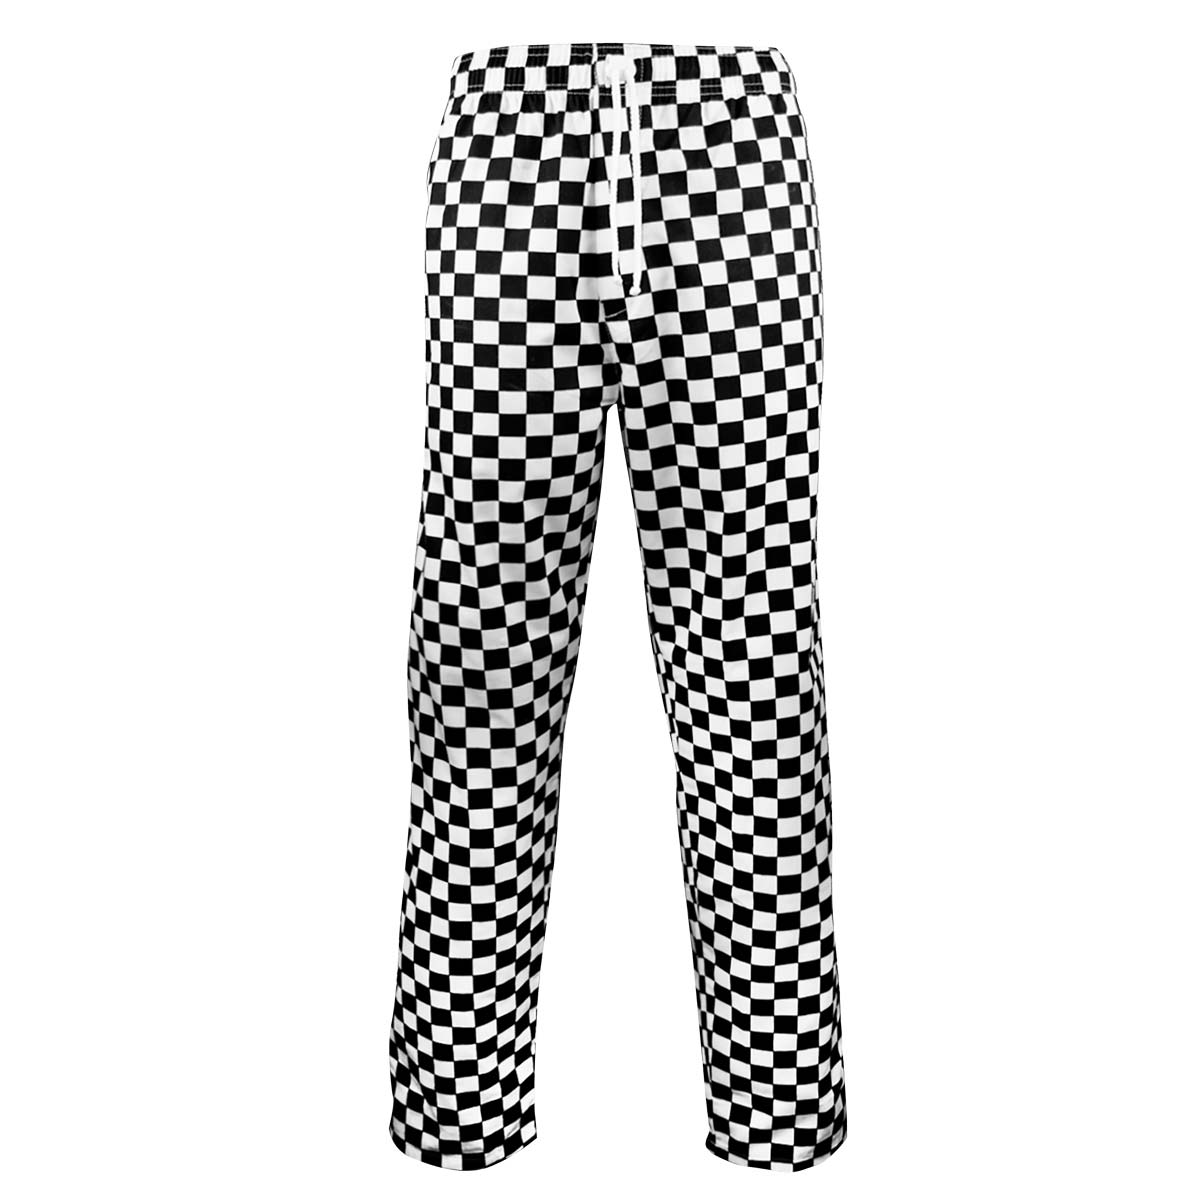 Chefs Trousers - CCTR1-CB